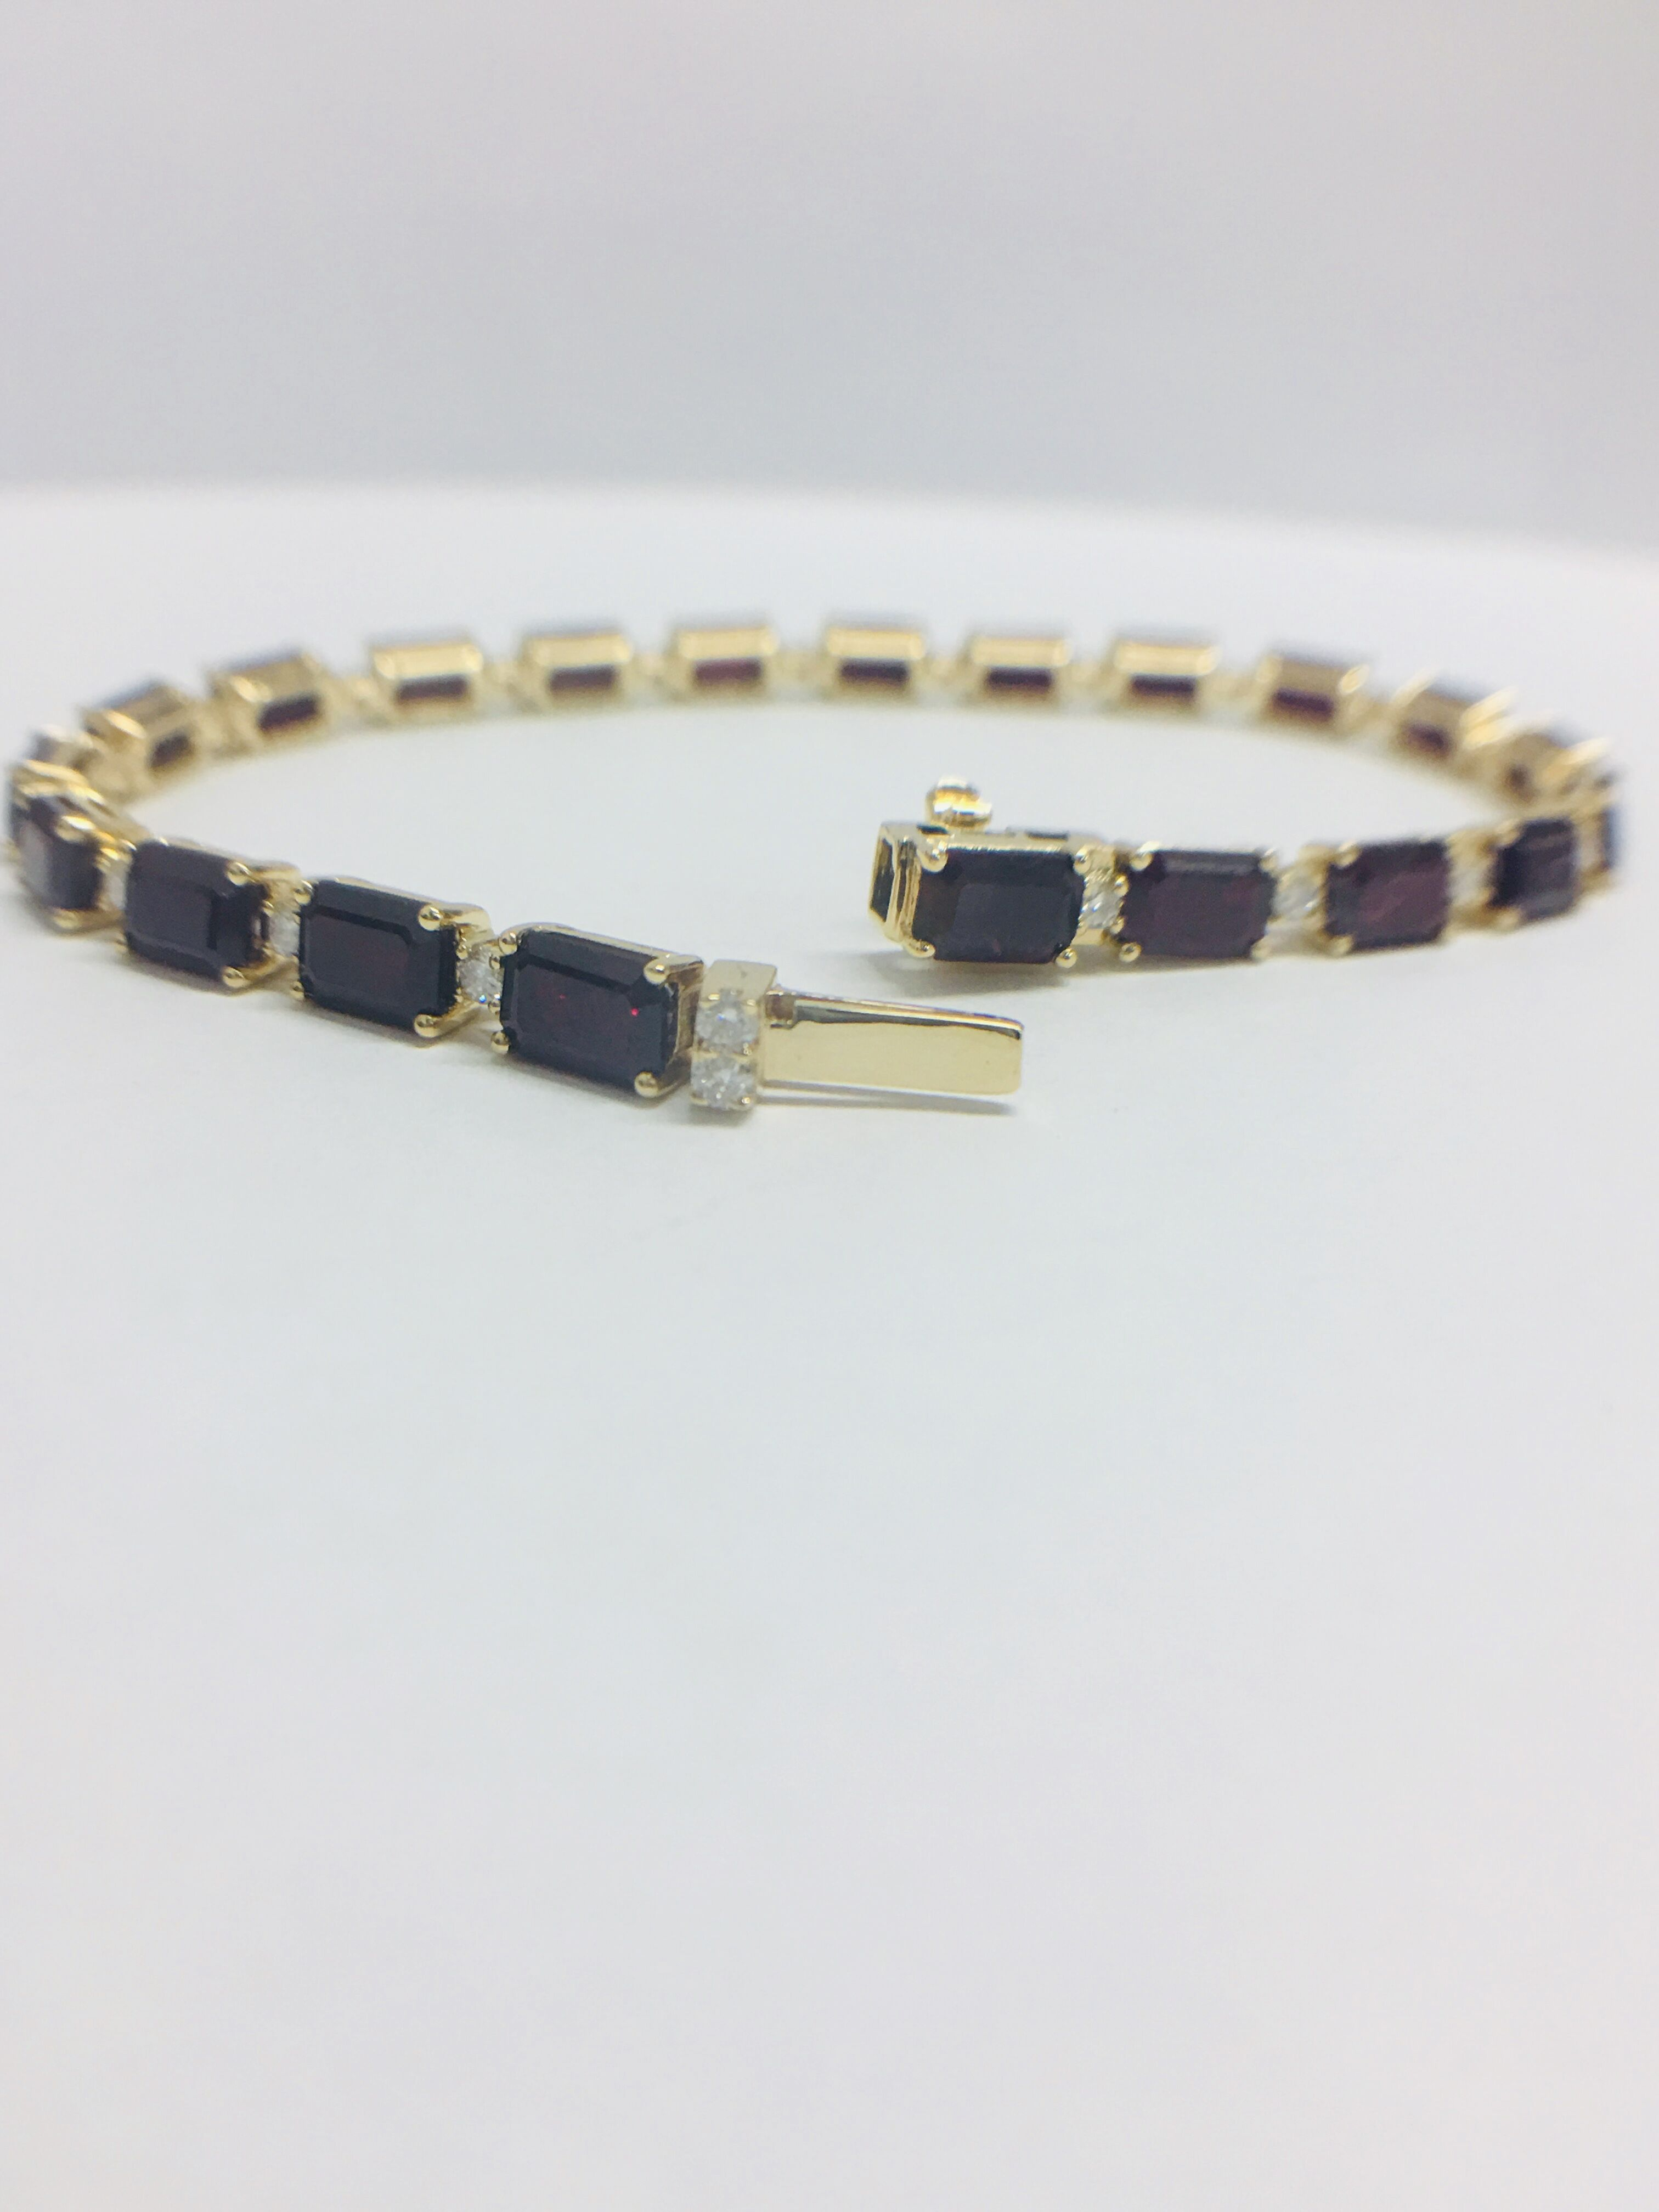 18ct yellow gold ruby and diamond tennis bracelet - Image 4 of 10